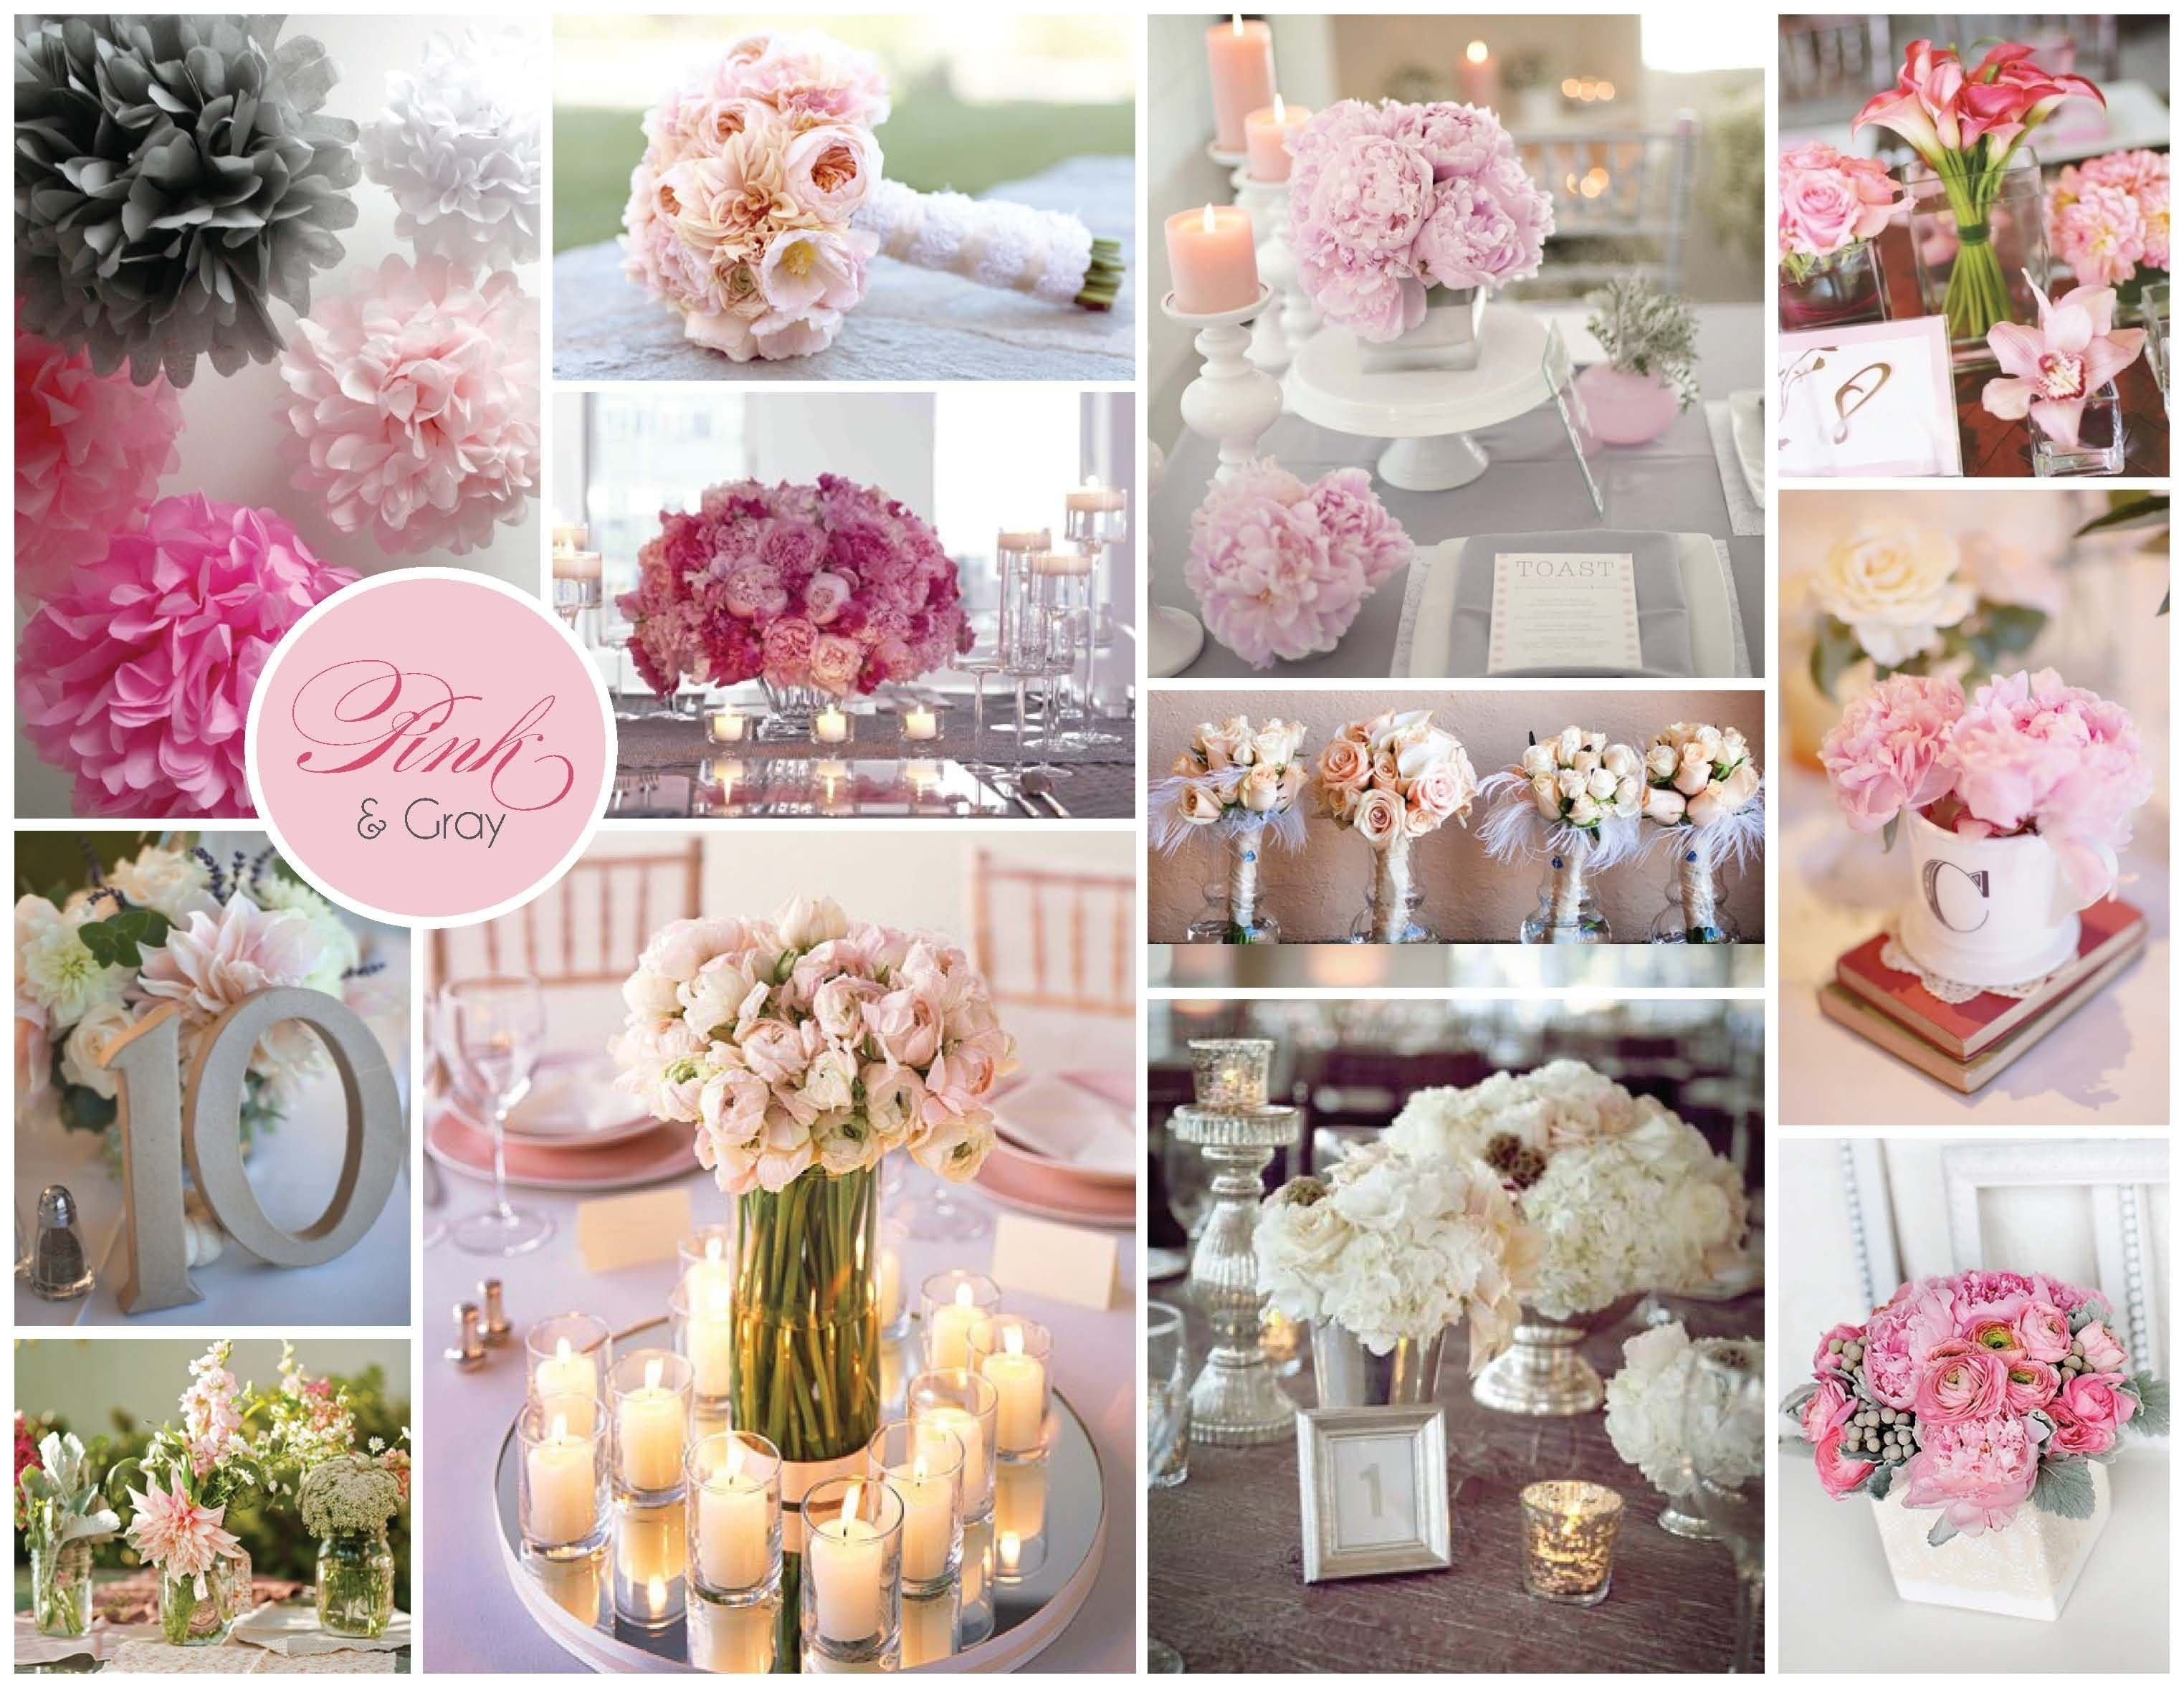 wedding ideas: pink and grey wedding ideas - i like the grey table